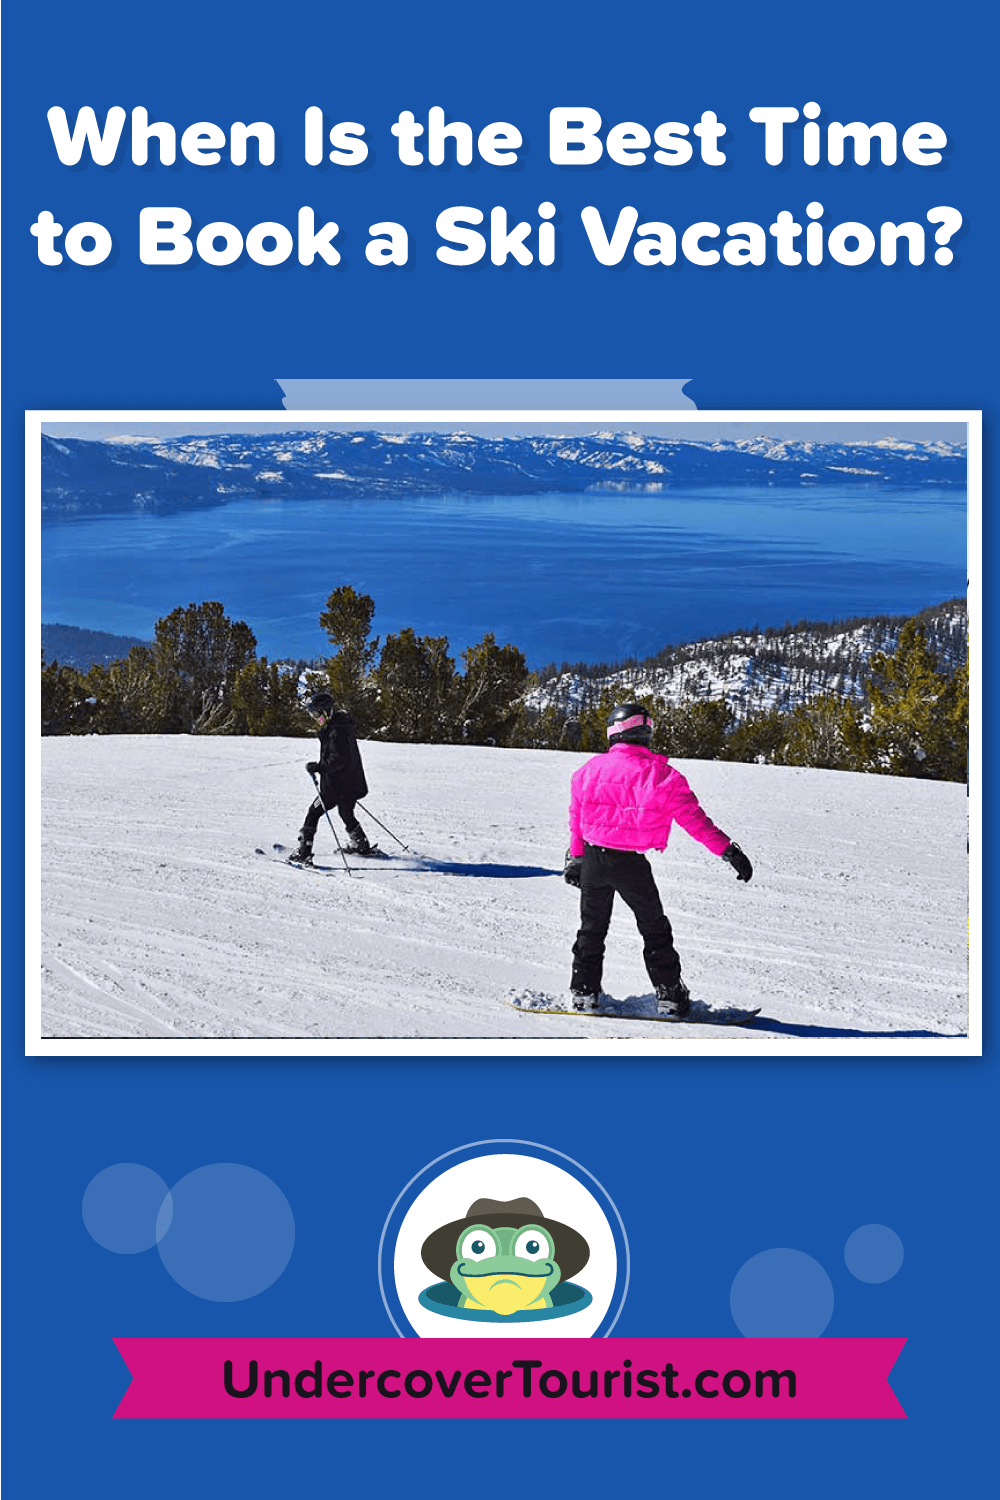 When Is the Best Time to Book a Ski Vacation? Pinterest